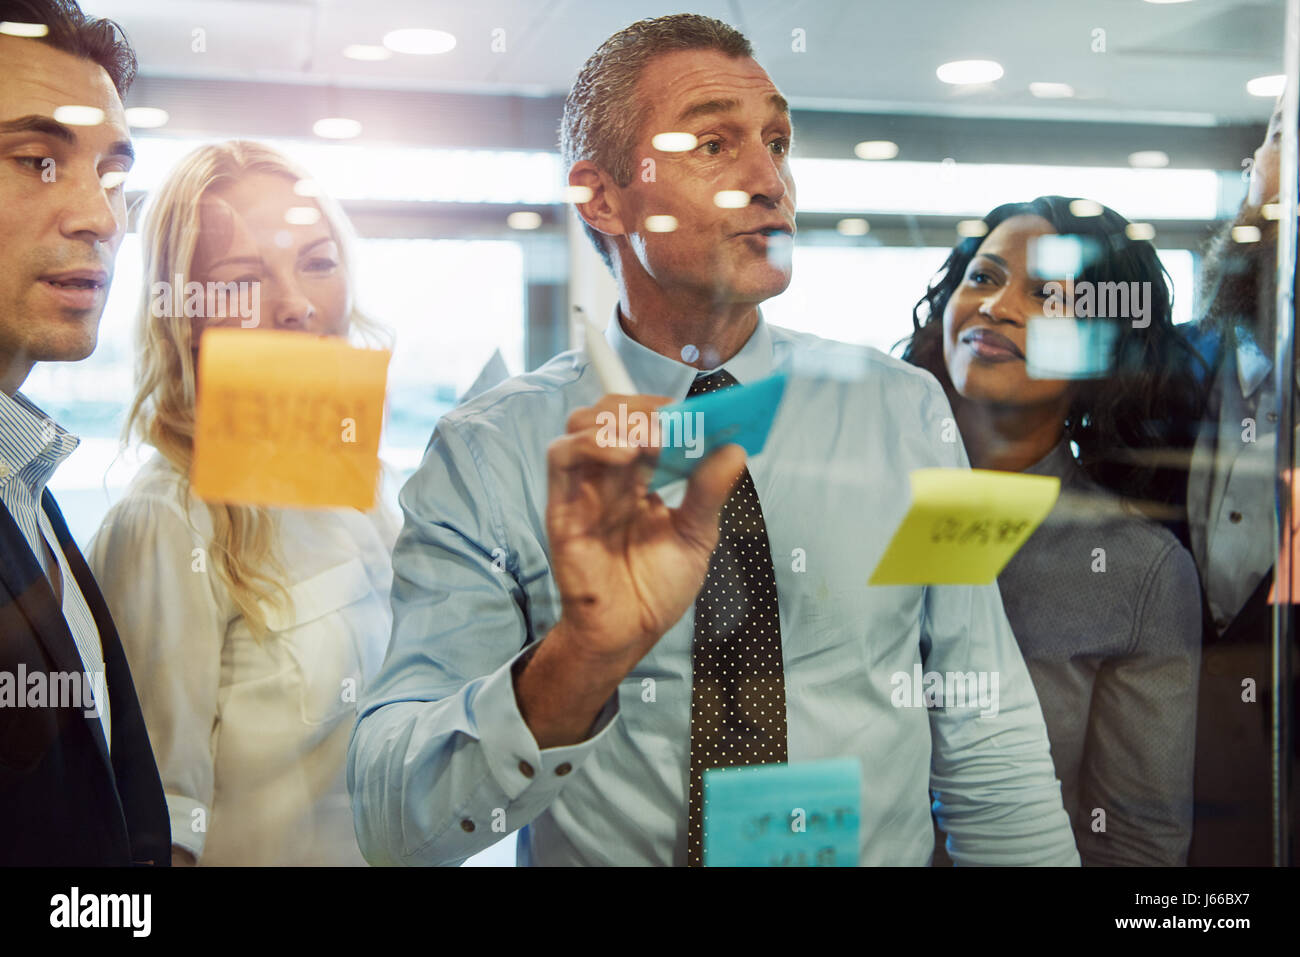 Half body portrait of business manager choosing sticky note on glass in office with colleagues in background, idea - Stock Image